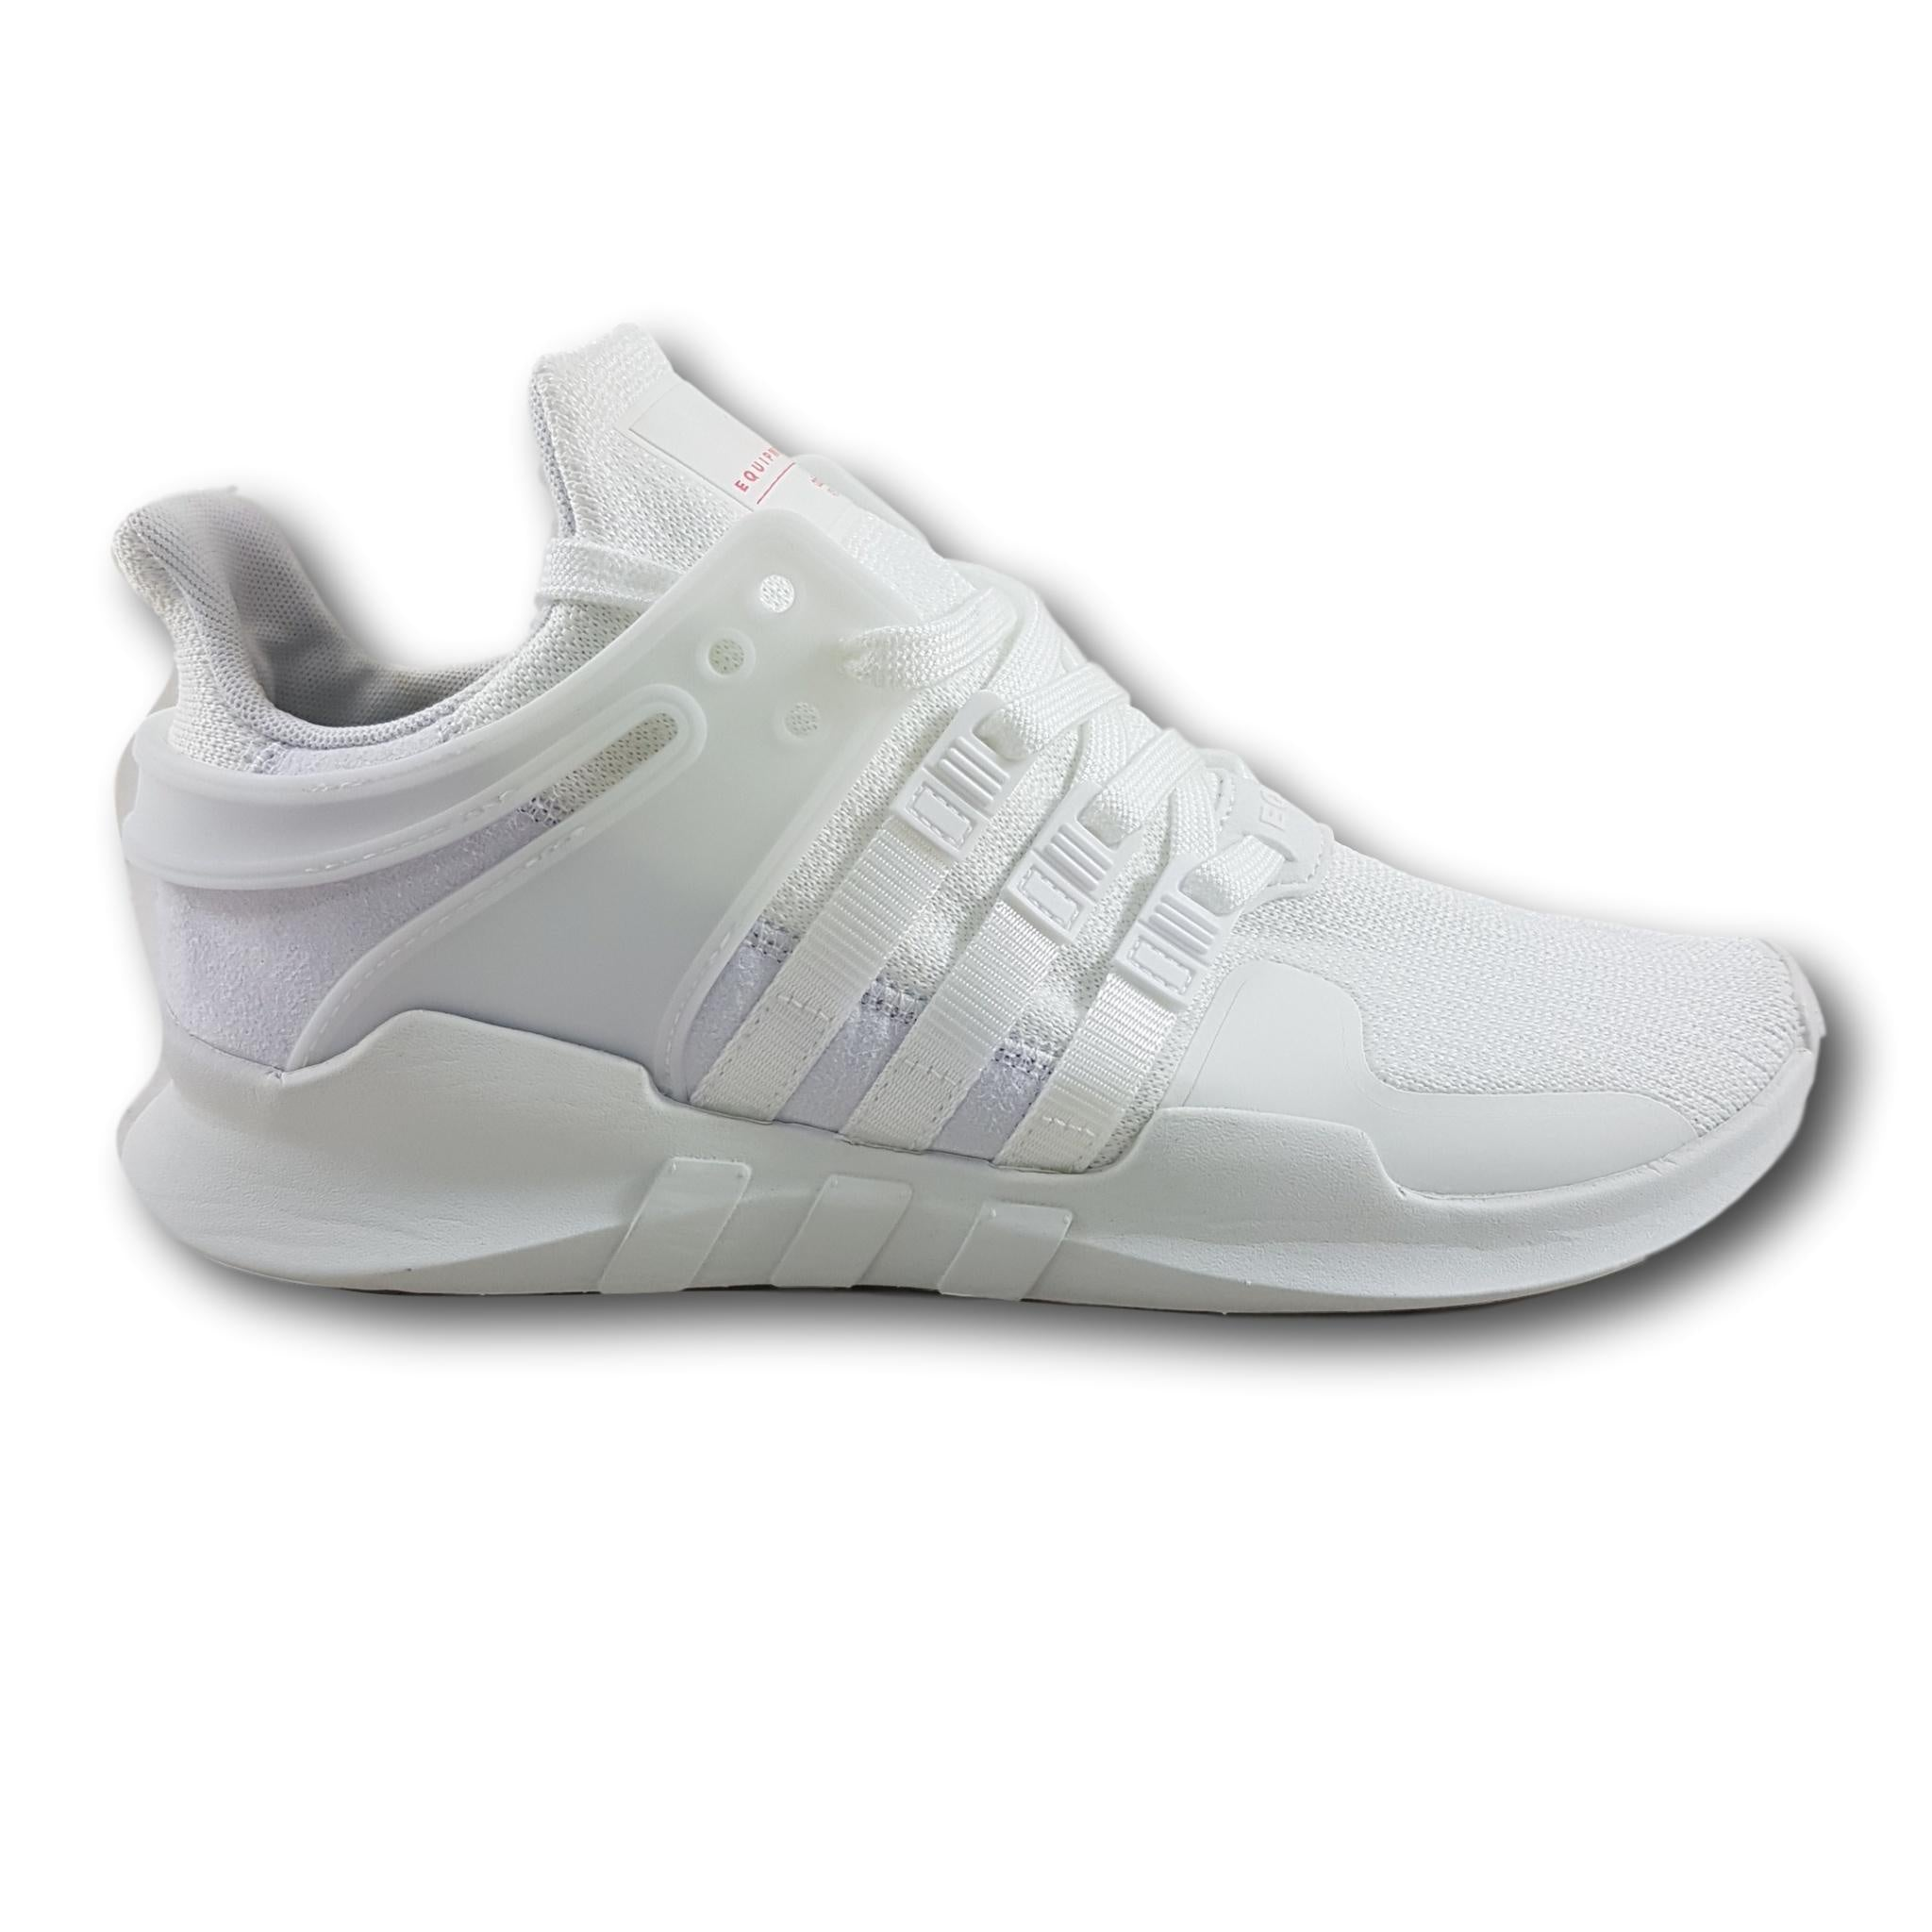 lowest price 6c0f4 5d8a9 Adidas Equipment Support ADV W White/White